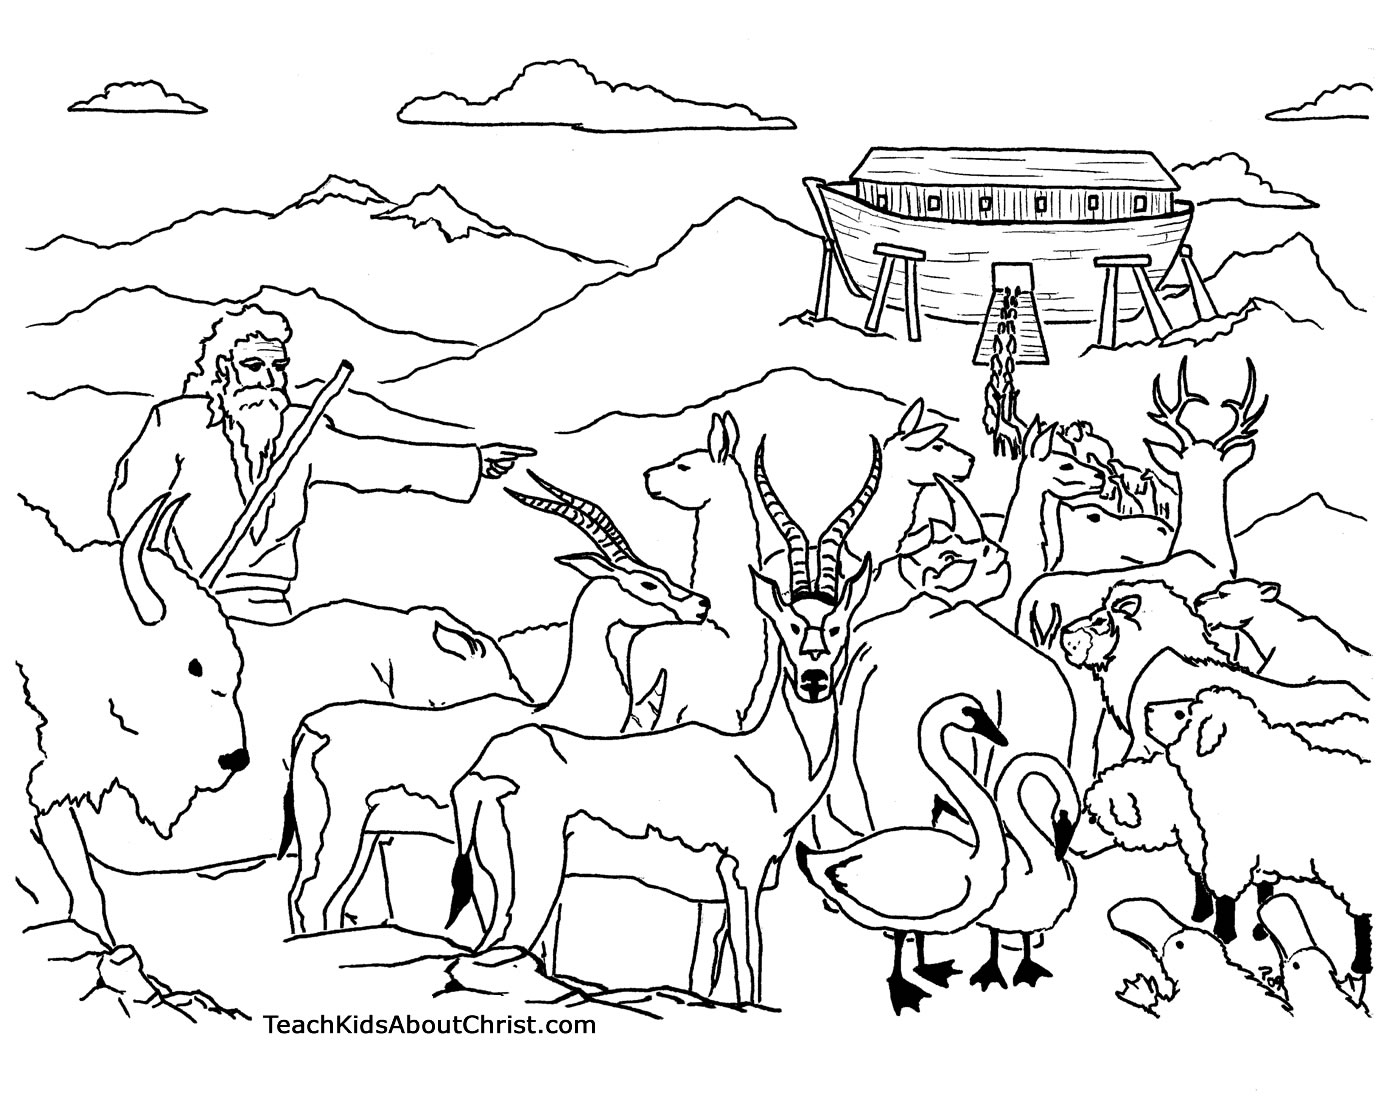 coloring page noahs ark noah and the ark coloring page page coloring noahs ark